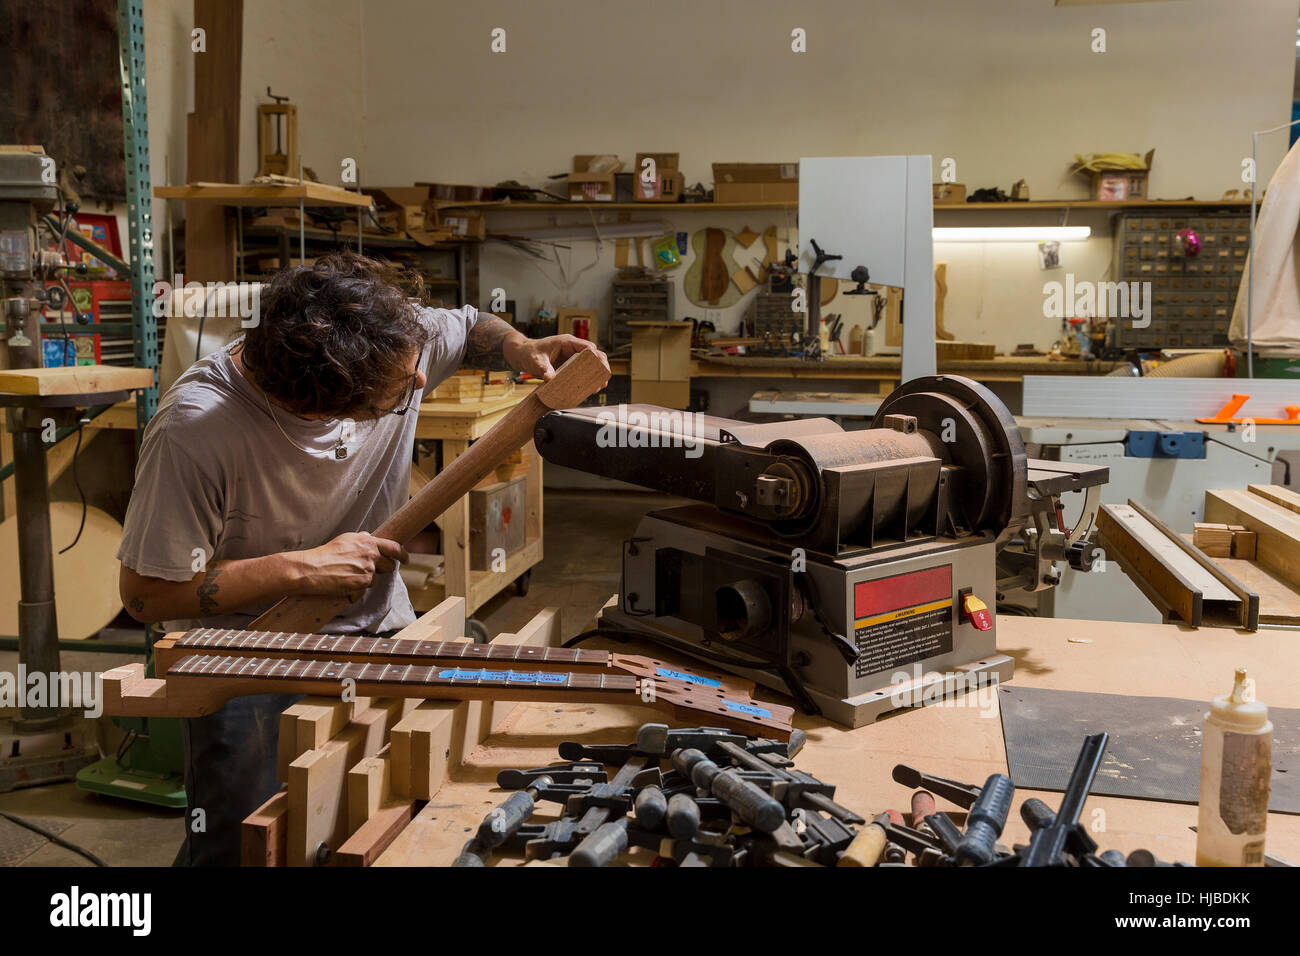 Guitar maker manufacturing guitar in workshop - Stock Image